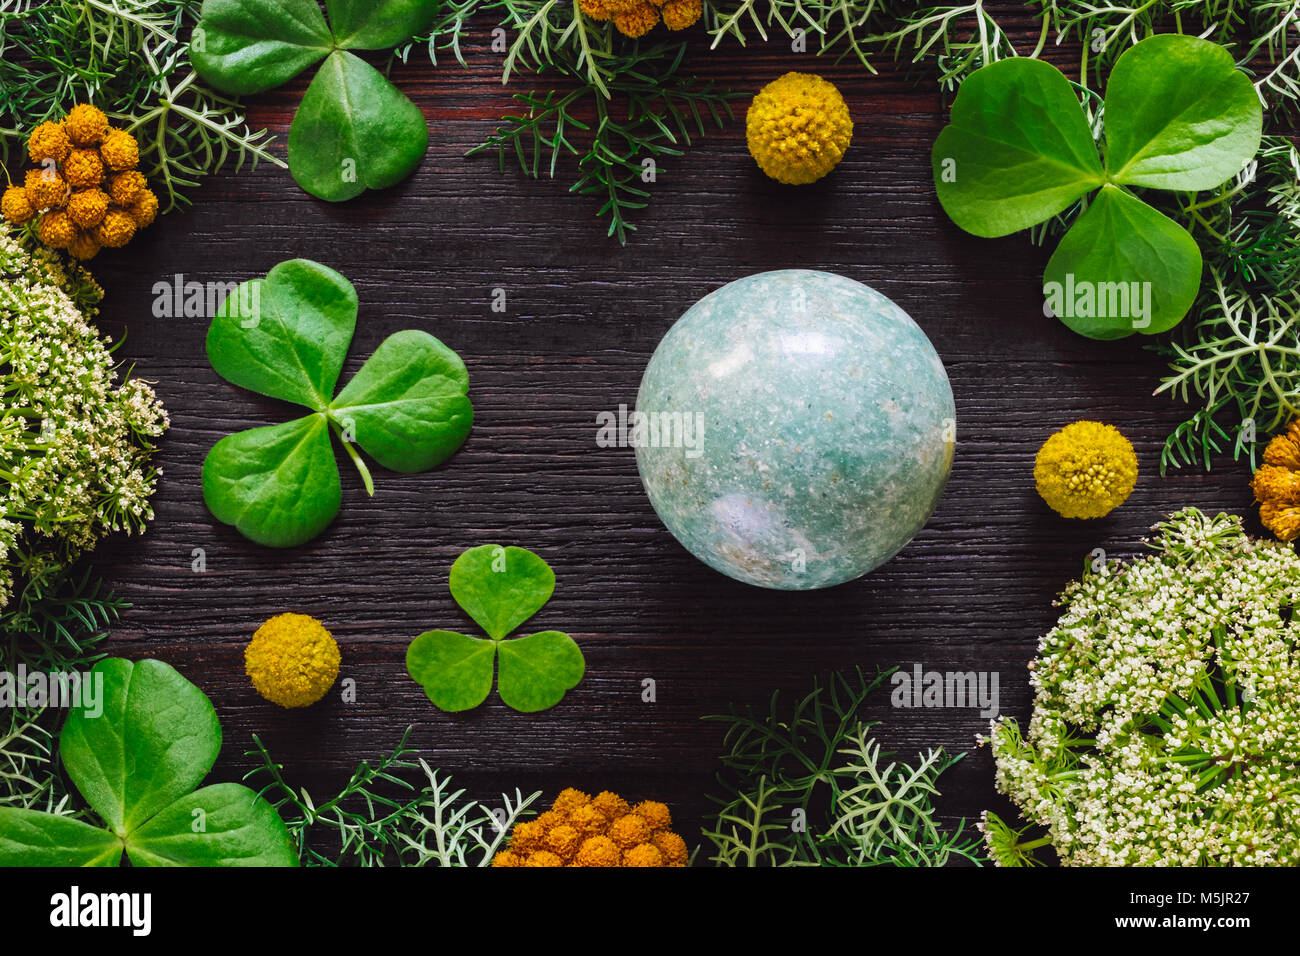 Green Aventurine Sphere with Shamrocks and Mixed Foliage on Dark Table - Stock Image